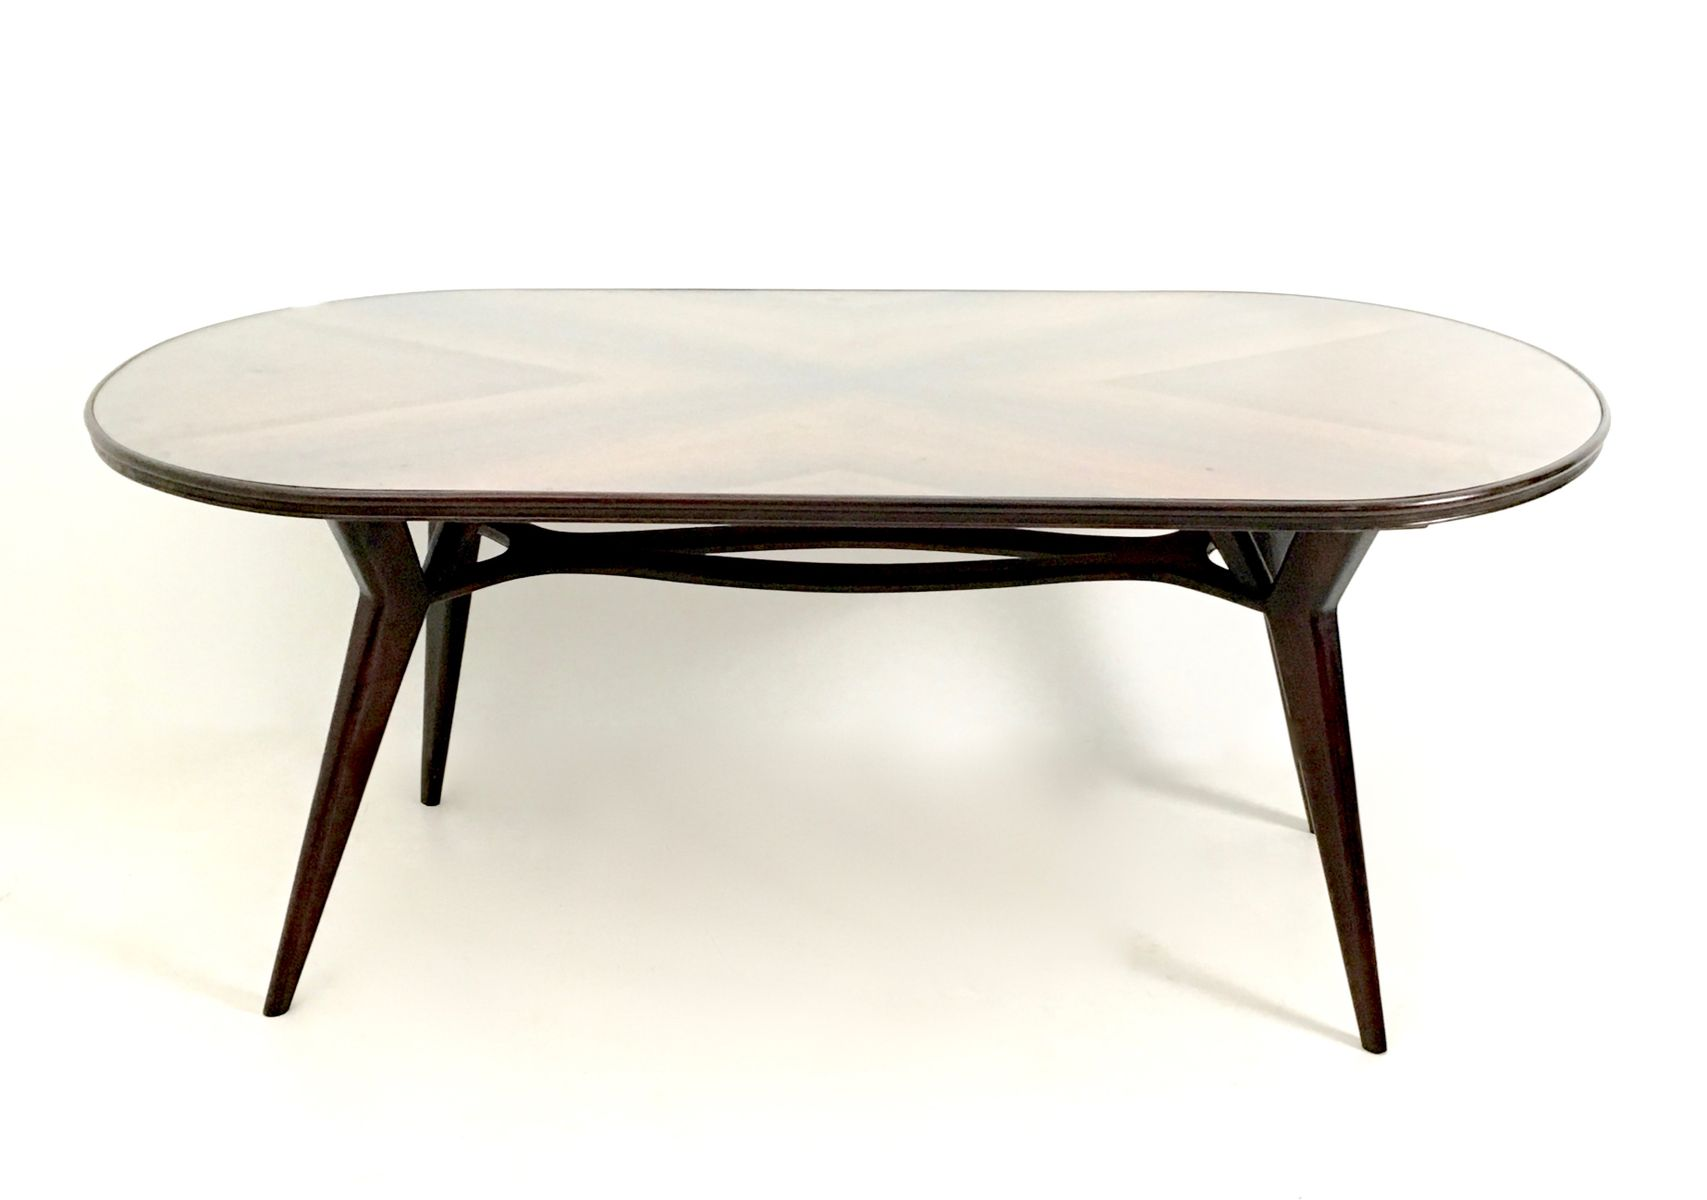 Table de salle a manger moderne en verre for Table salle a manger triangulaire